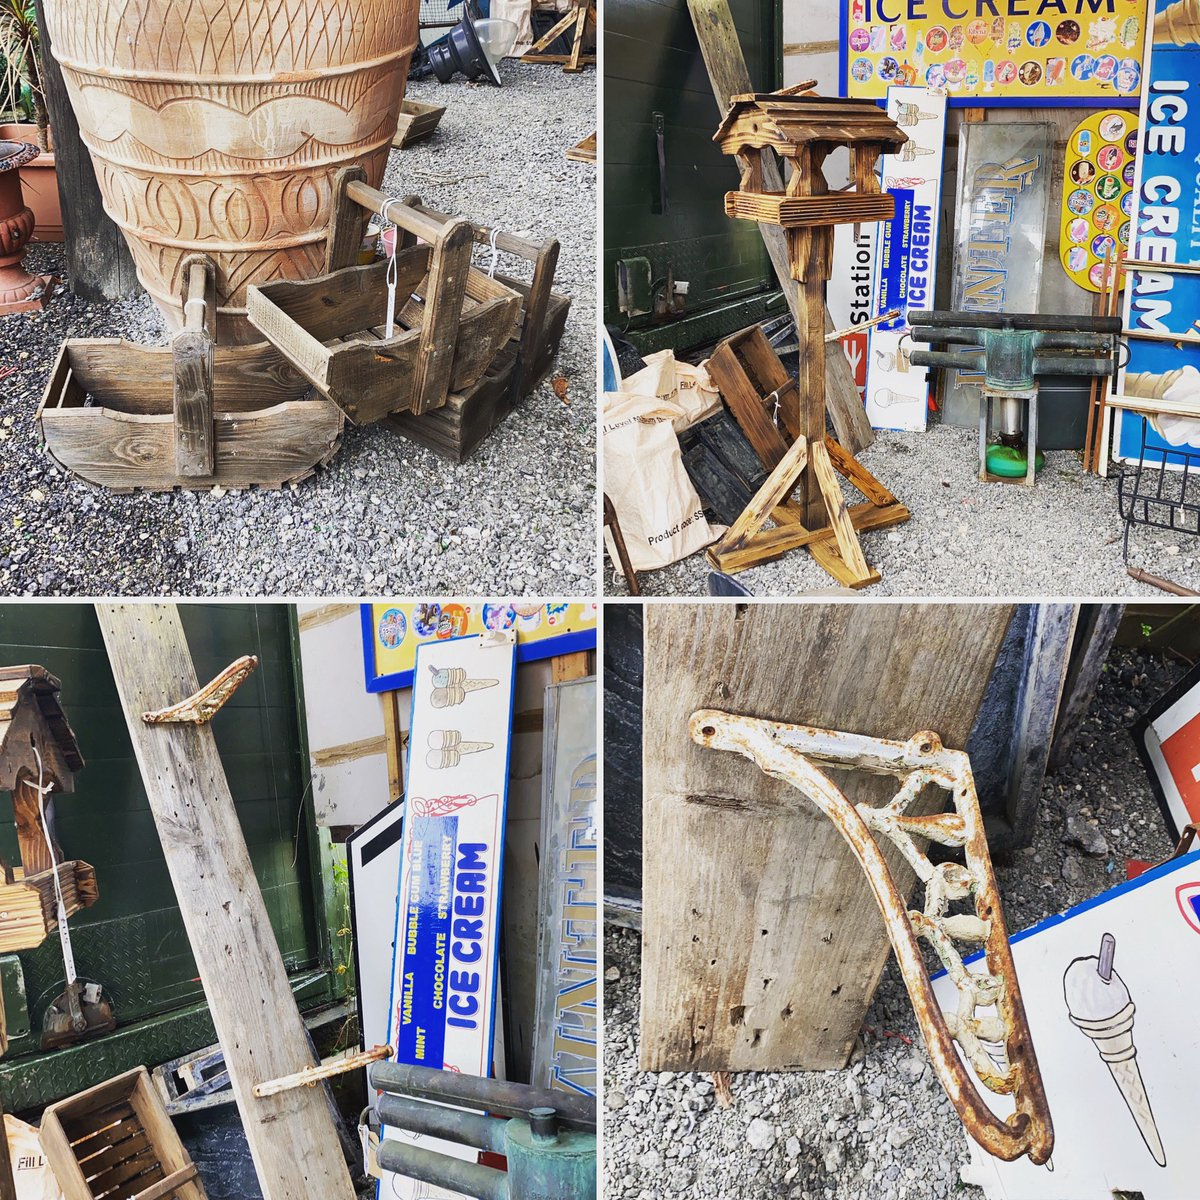 More new stock outside in our salvage yard. #gardenstatues #birdhouses #salvage #signs #wheels #trugs #pots #galvanized #gardensofinstagram #outdoors #outsidespaces #crates #astraantiquescentre #hemswell #lincolnshire Open 10-5 https://t.co/xQeTji1dSw